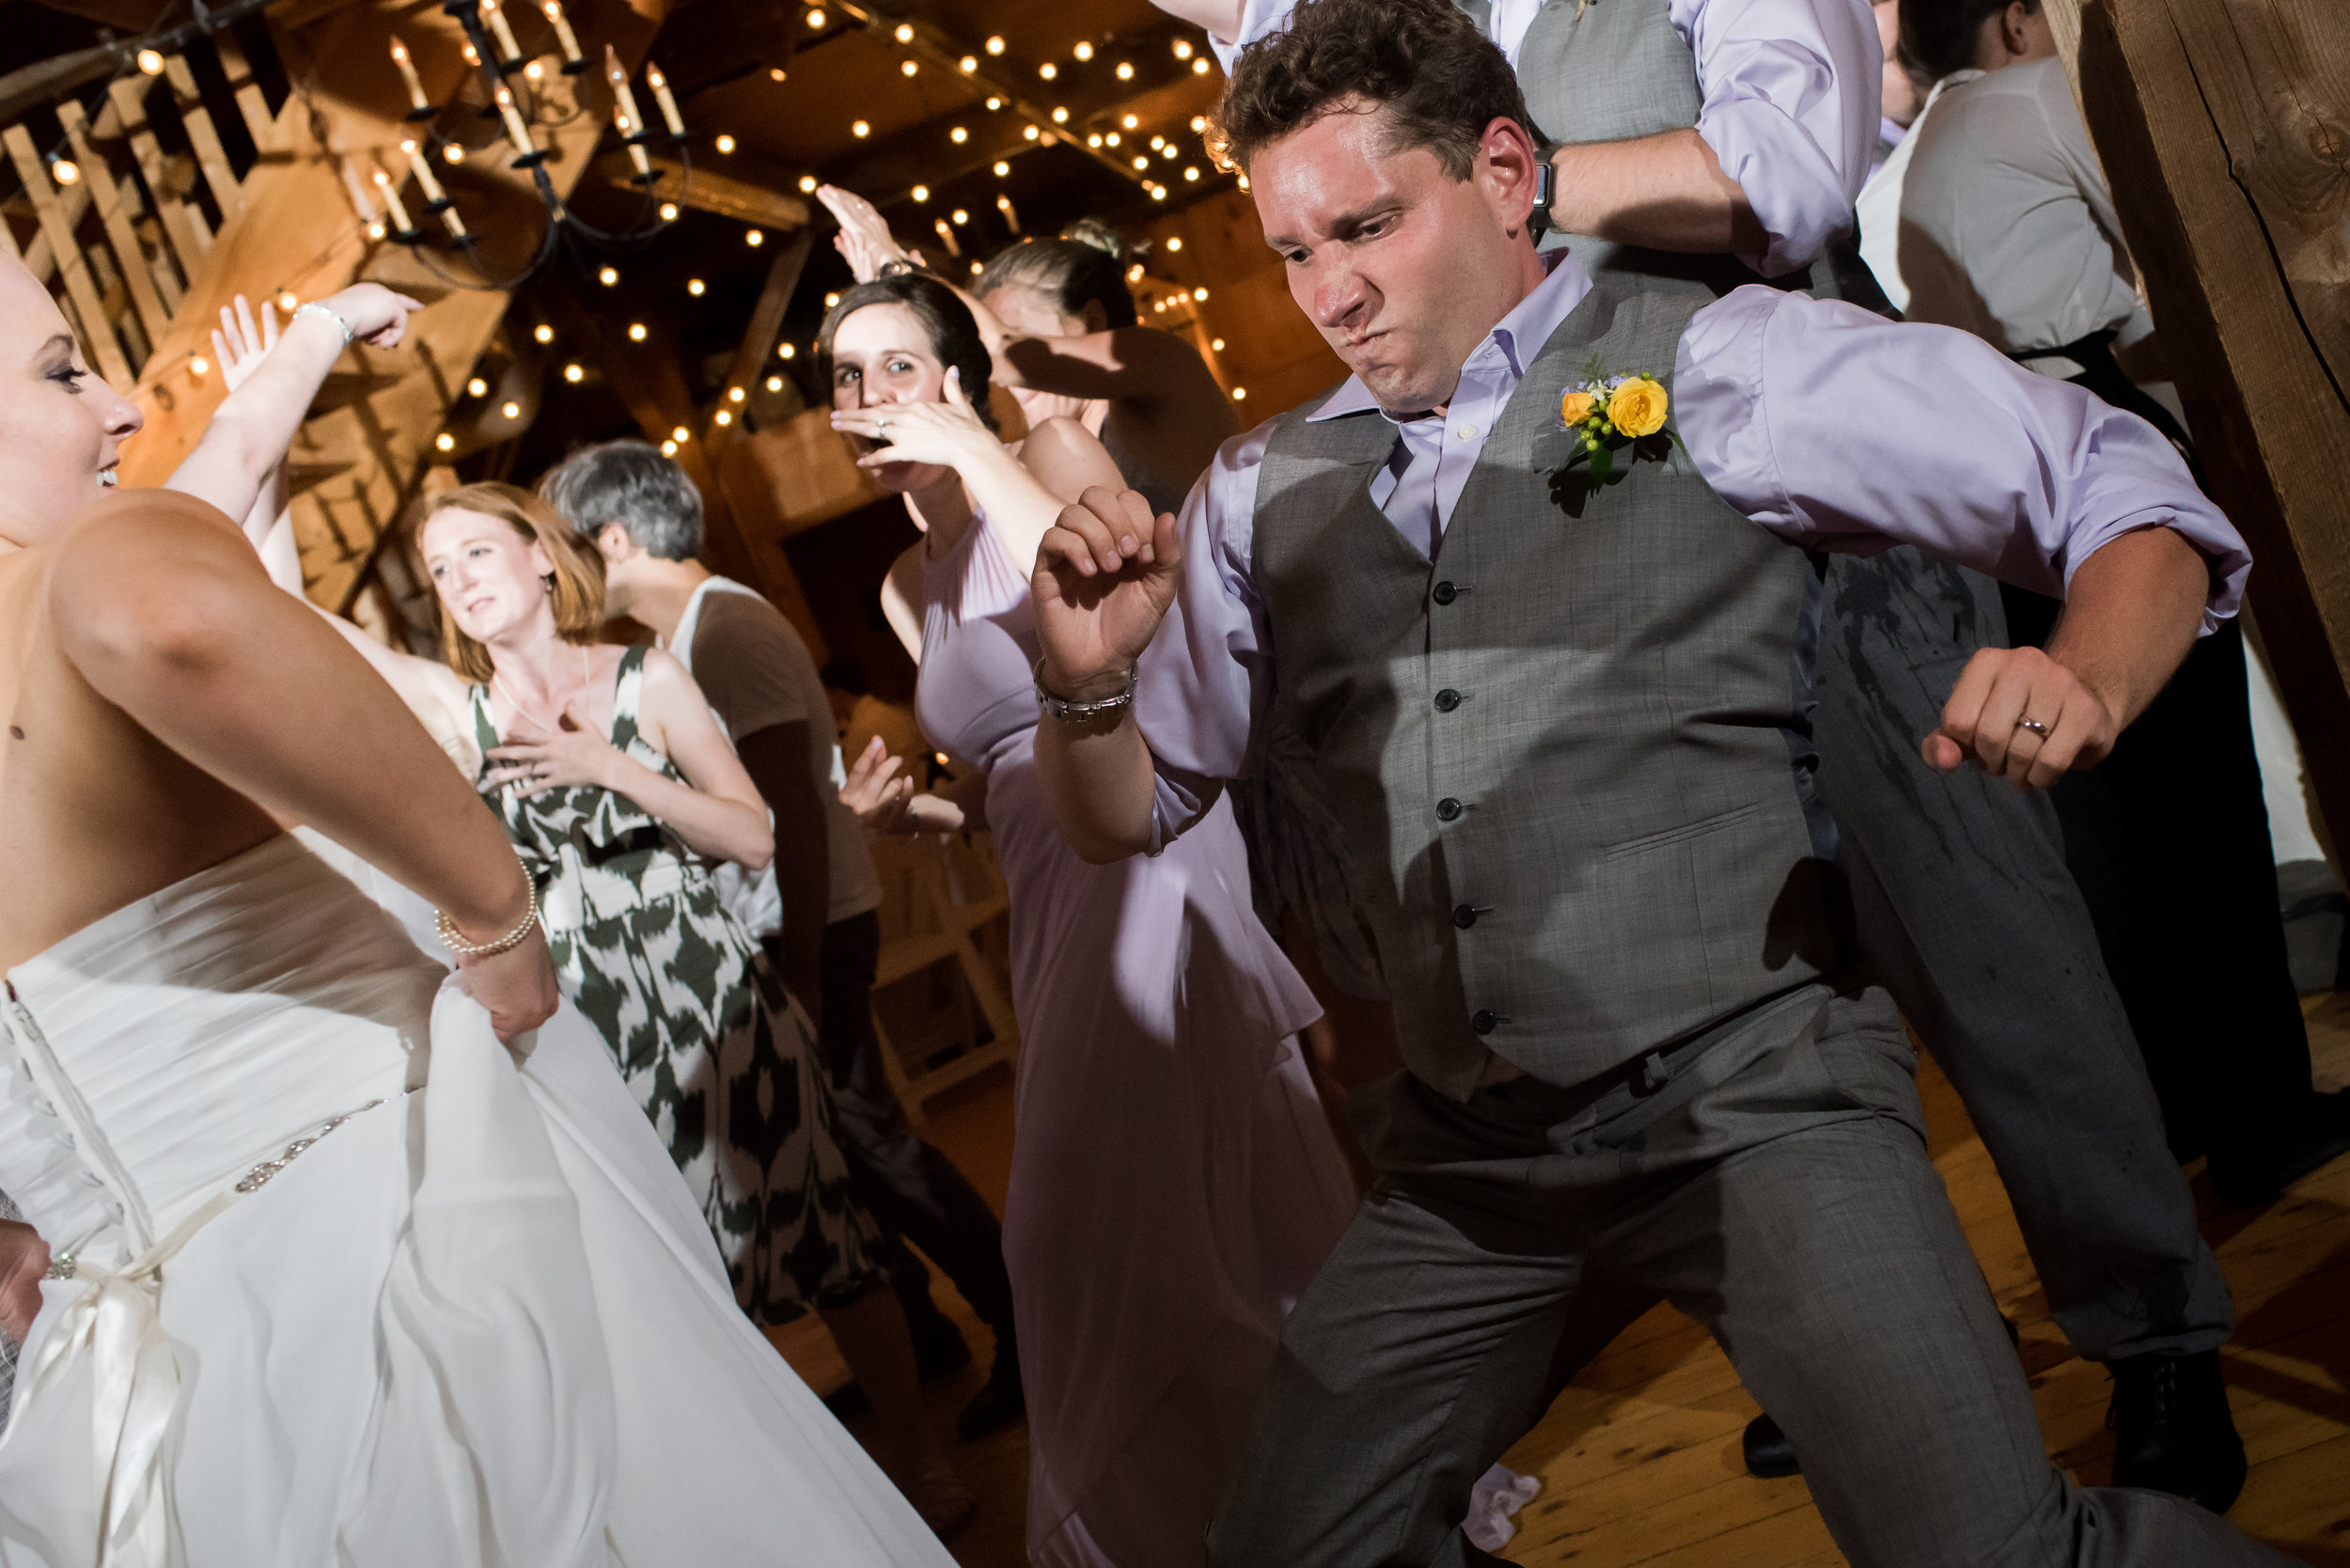 Stefy Hilmer Photography- groom is dancing with his bride at their wedding reception.jpg